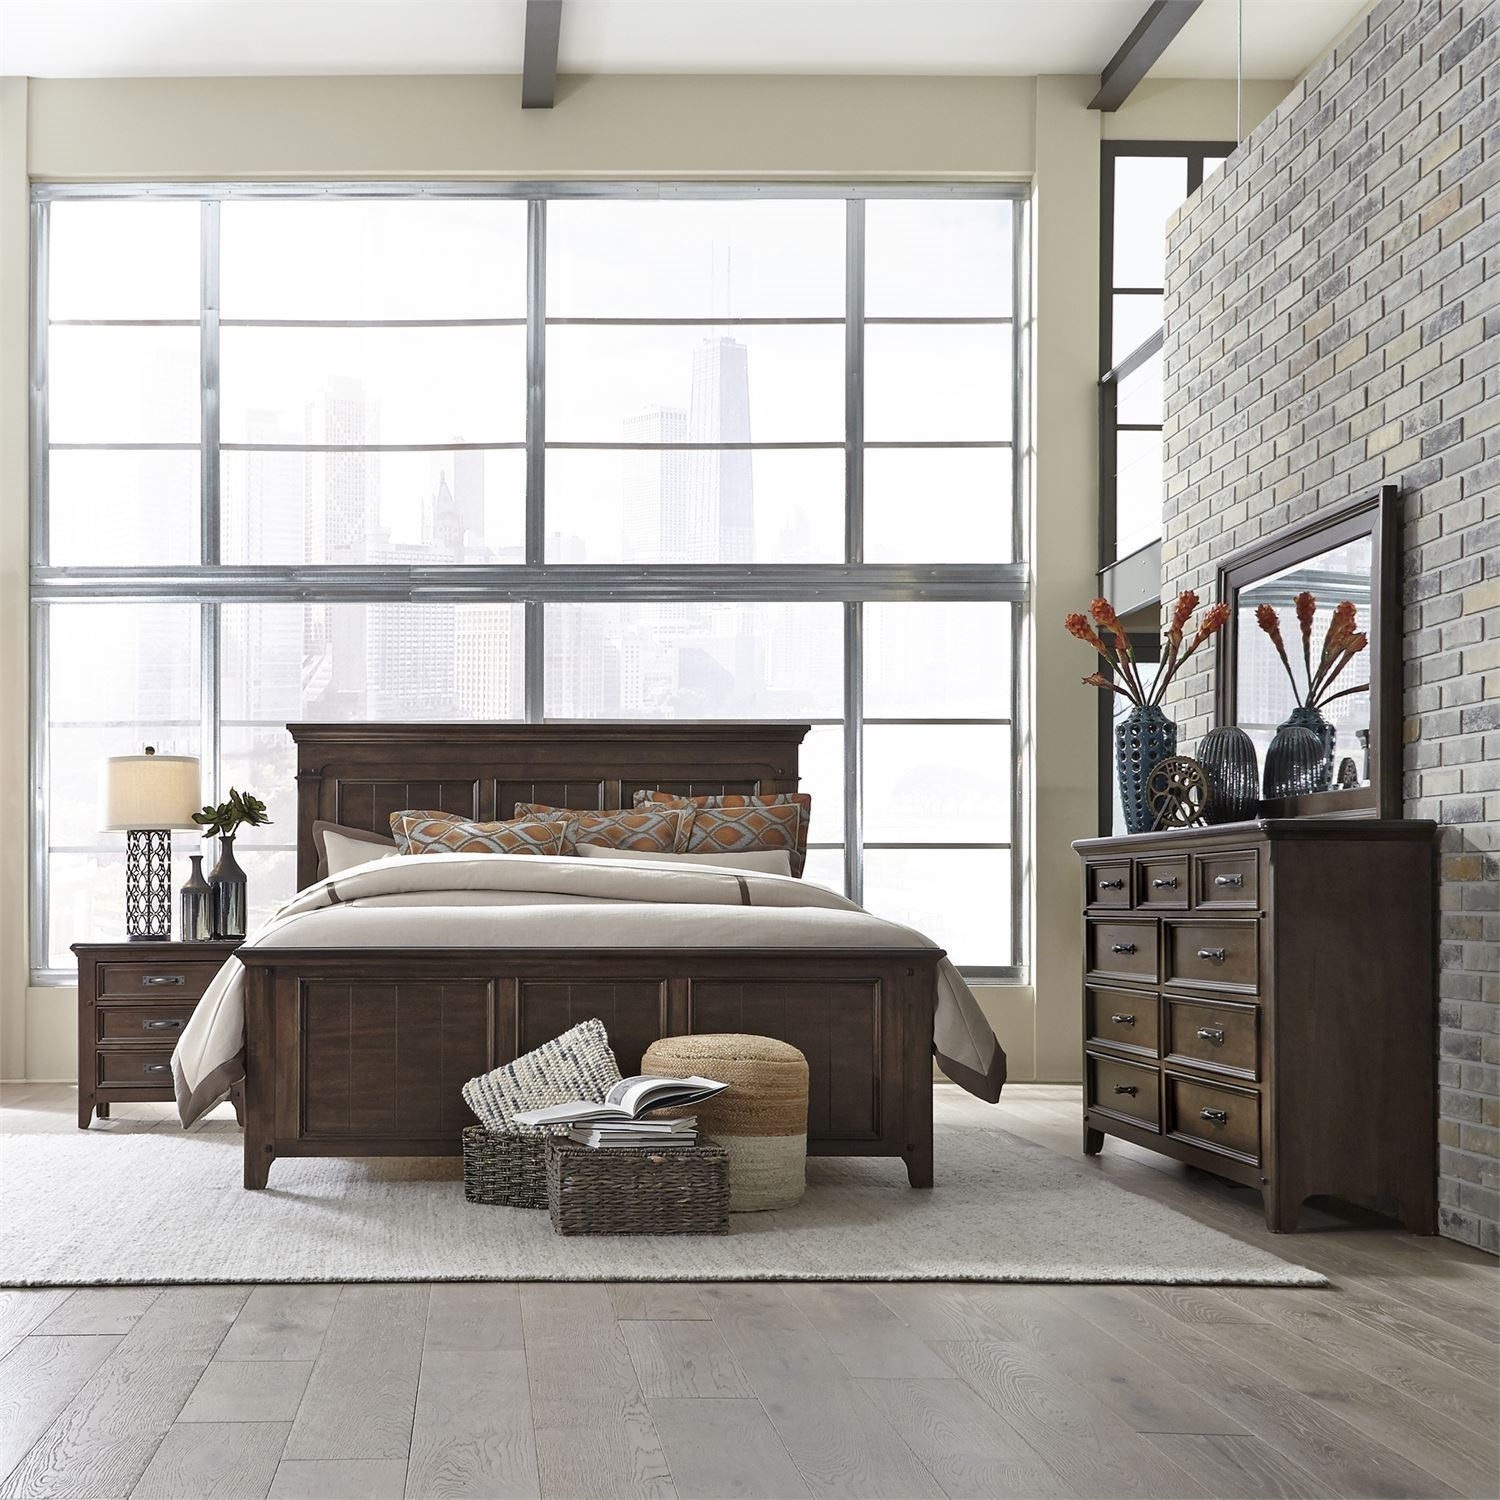 Saddlebrook King Bedroom Group by Liberty Furniture at Northeast Factory Direct